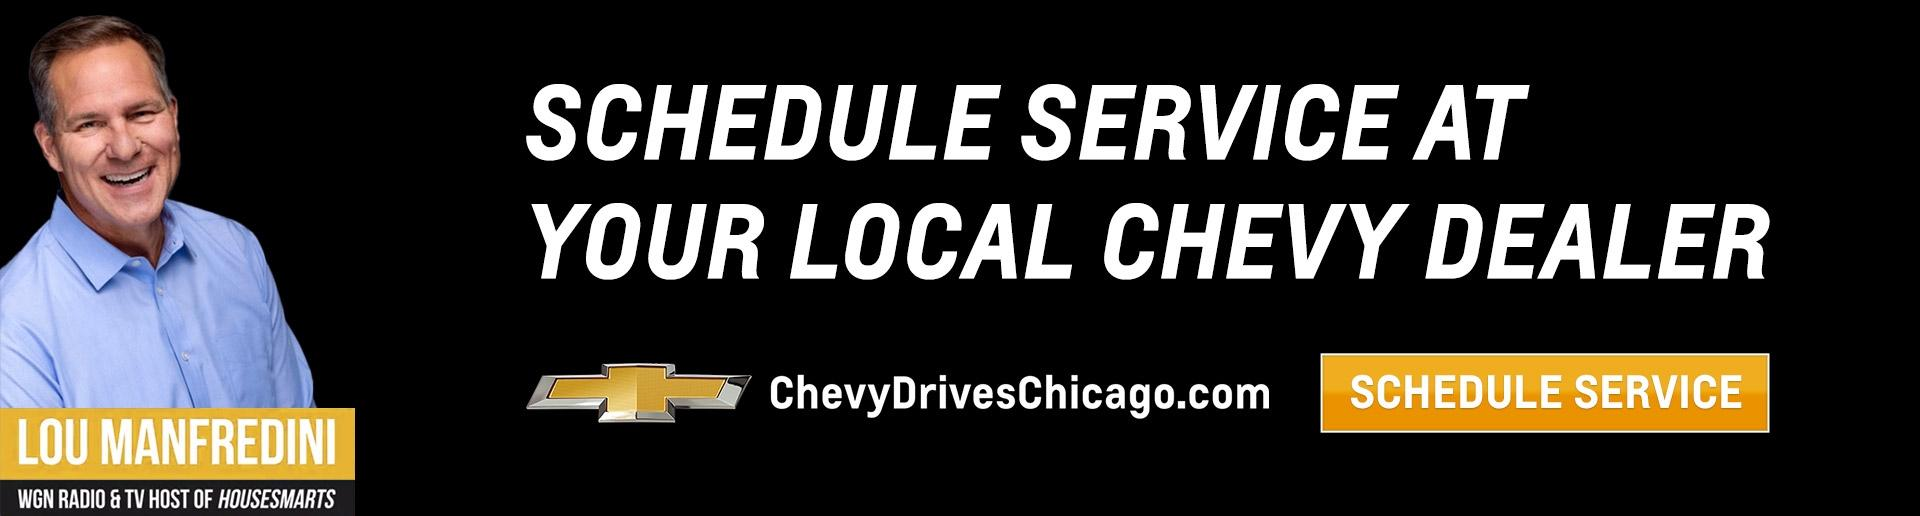 Chevy Drives Chicago